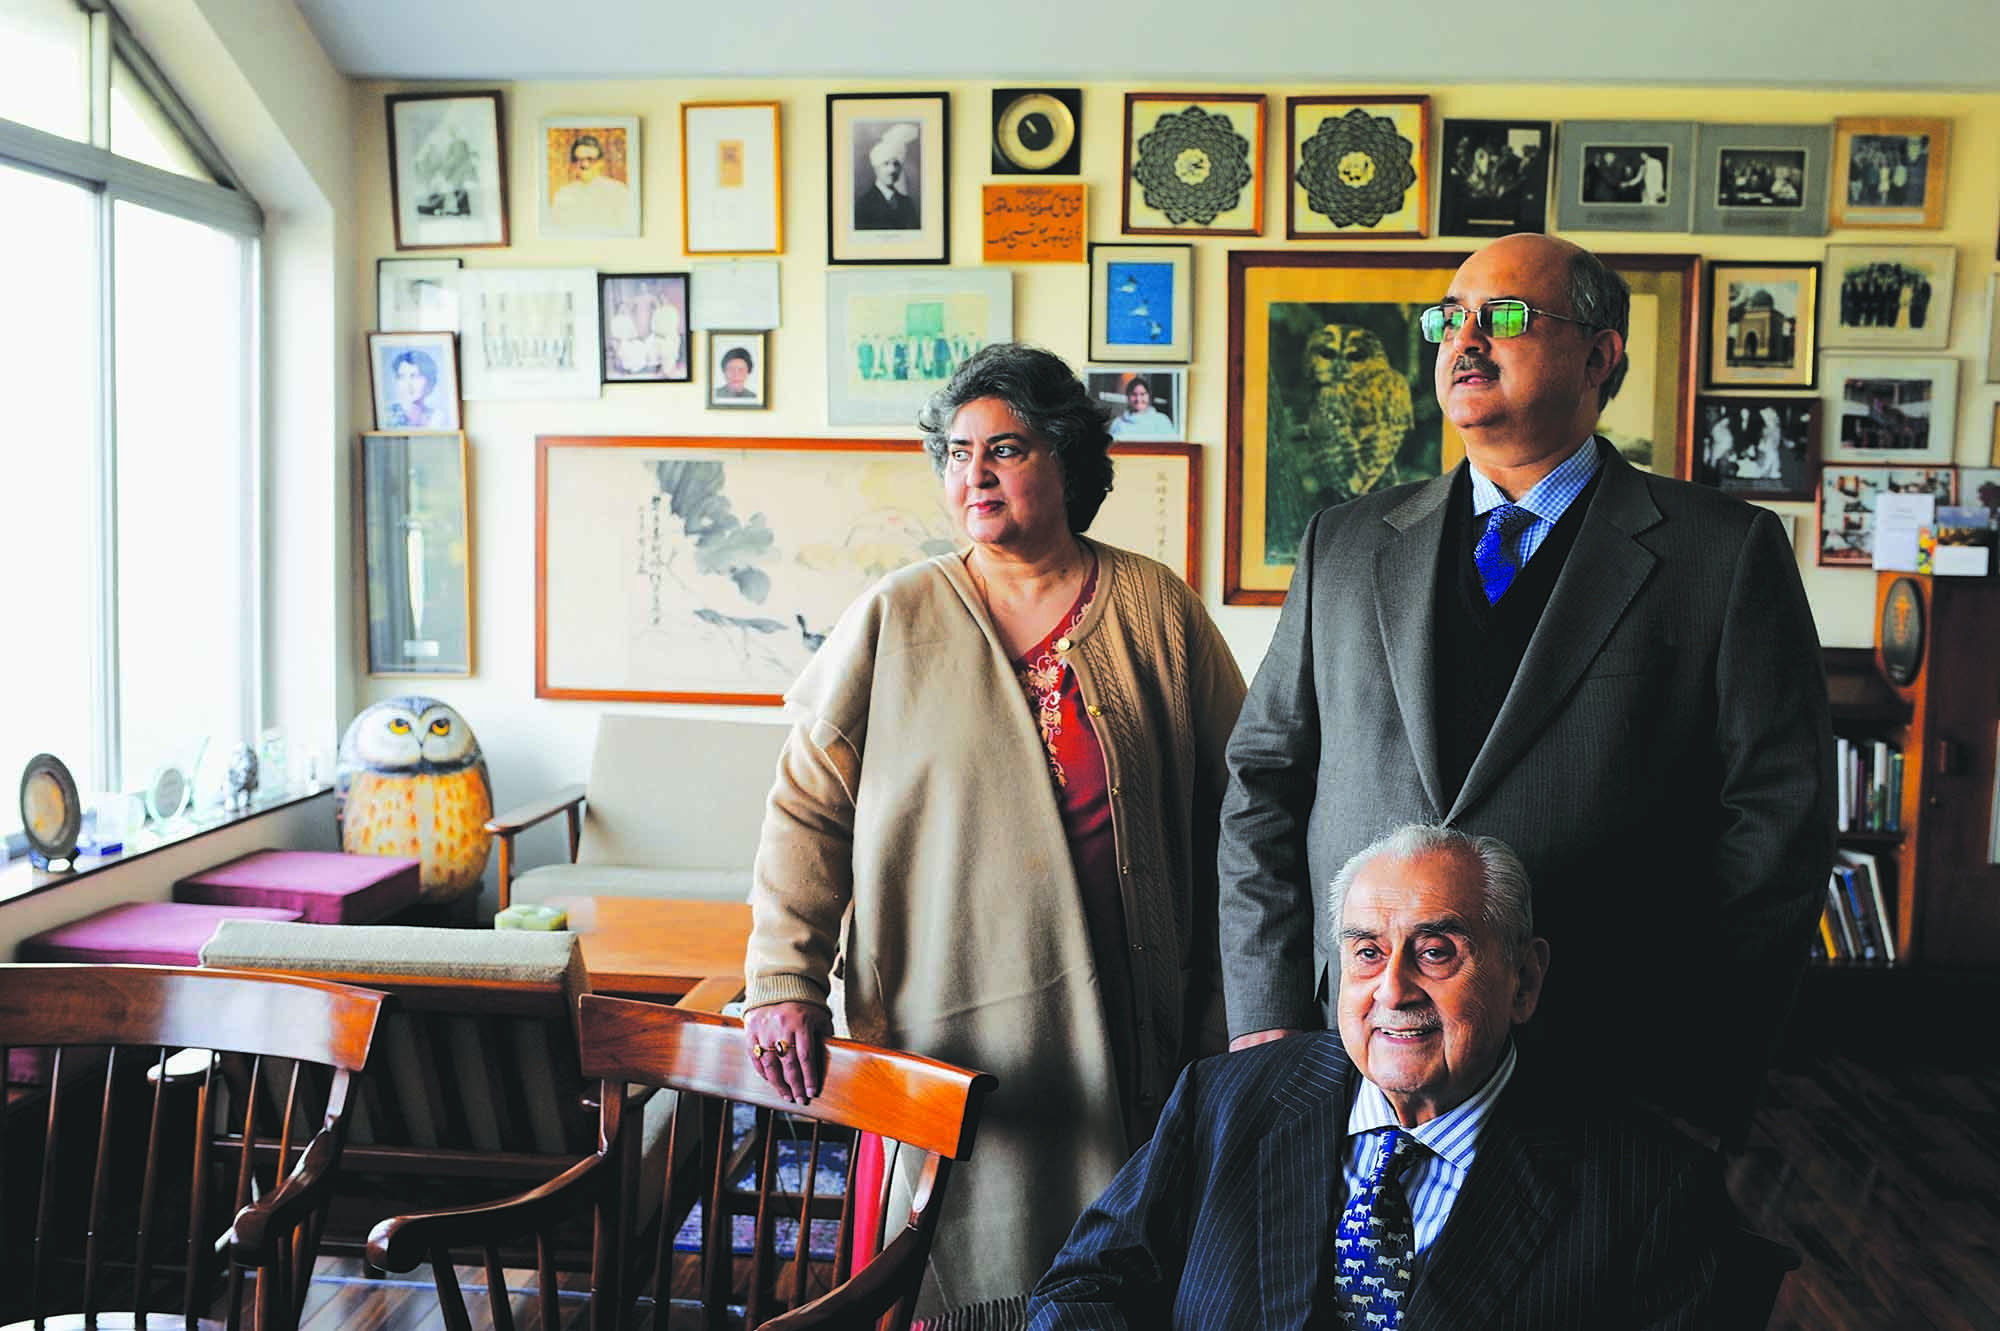 Syed Babar Ali is seated in his office at the Packages headquarters in Lahore. Standing behind him are his son Syed Haider Ali and his daughter Henna Babar Ali. Syed Babar Ali is one of Pakistan's most respected entrepreneurs and industrialists. He is the founder of Packages Limited, Pakistan's largest paper and board mill, which he established in 1956, as a joint venture between the Ali Group of Pakistan and Åkerlund and Rausing of Sweden. One of the most recognisable and successful brands under the Packages corporate umbrella is the premium-quality tissue paper Rose Petal, launched in 1982. Syed Babar Ali also set up Tetra Pak, Milkpak and Nestlé in Pakistan as joint ventures with multinationals. A defining characteristic of Syed Babar Ali is his ability to identify changing consumer dynamics and then develop business solutions to cater to them. Given the increasing demand for organised retail in Lahore, his latest venture was the launch of Packages Mall in 2017. Designed in line with international standards, the mall has redefined the shopping experience for the people of the city. (photo: Arif Mahmood/ Dawn White Star)